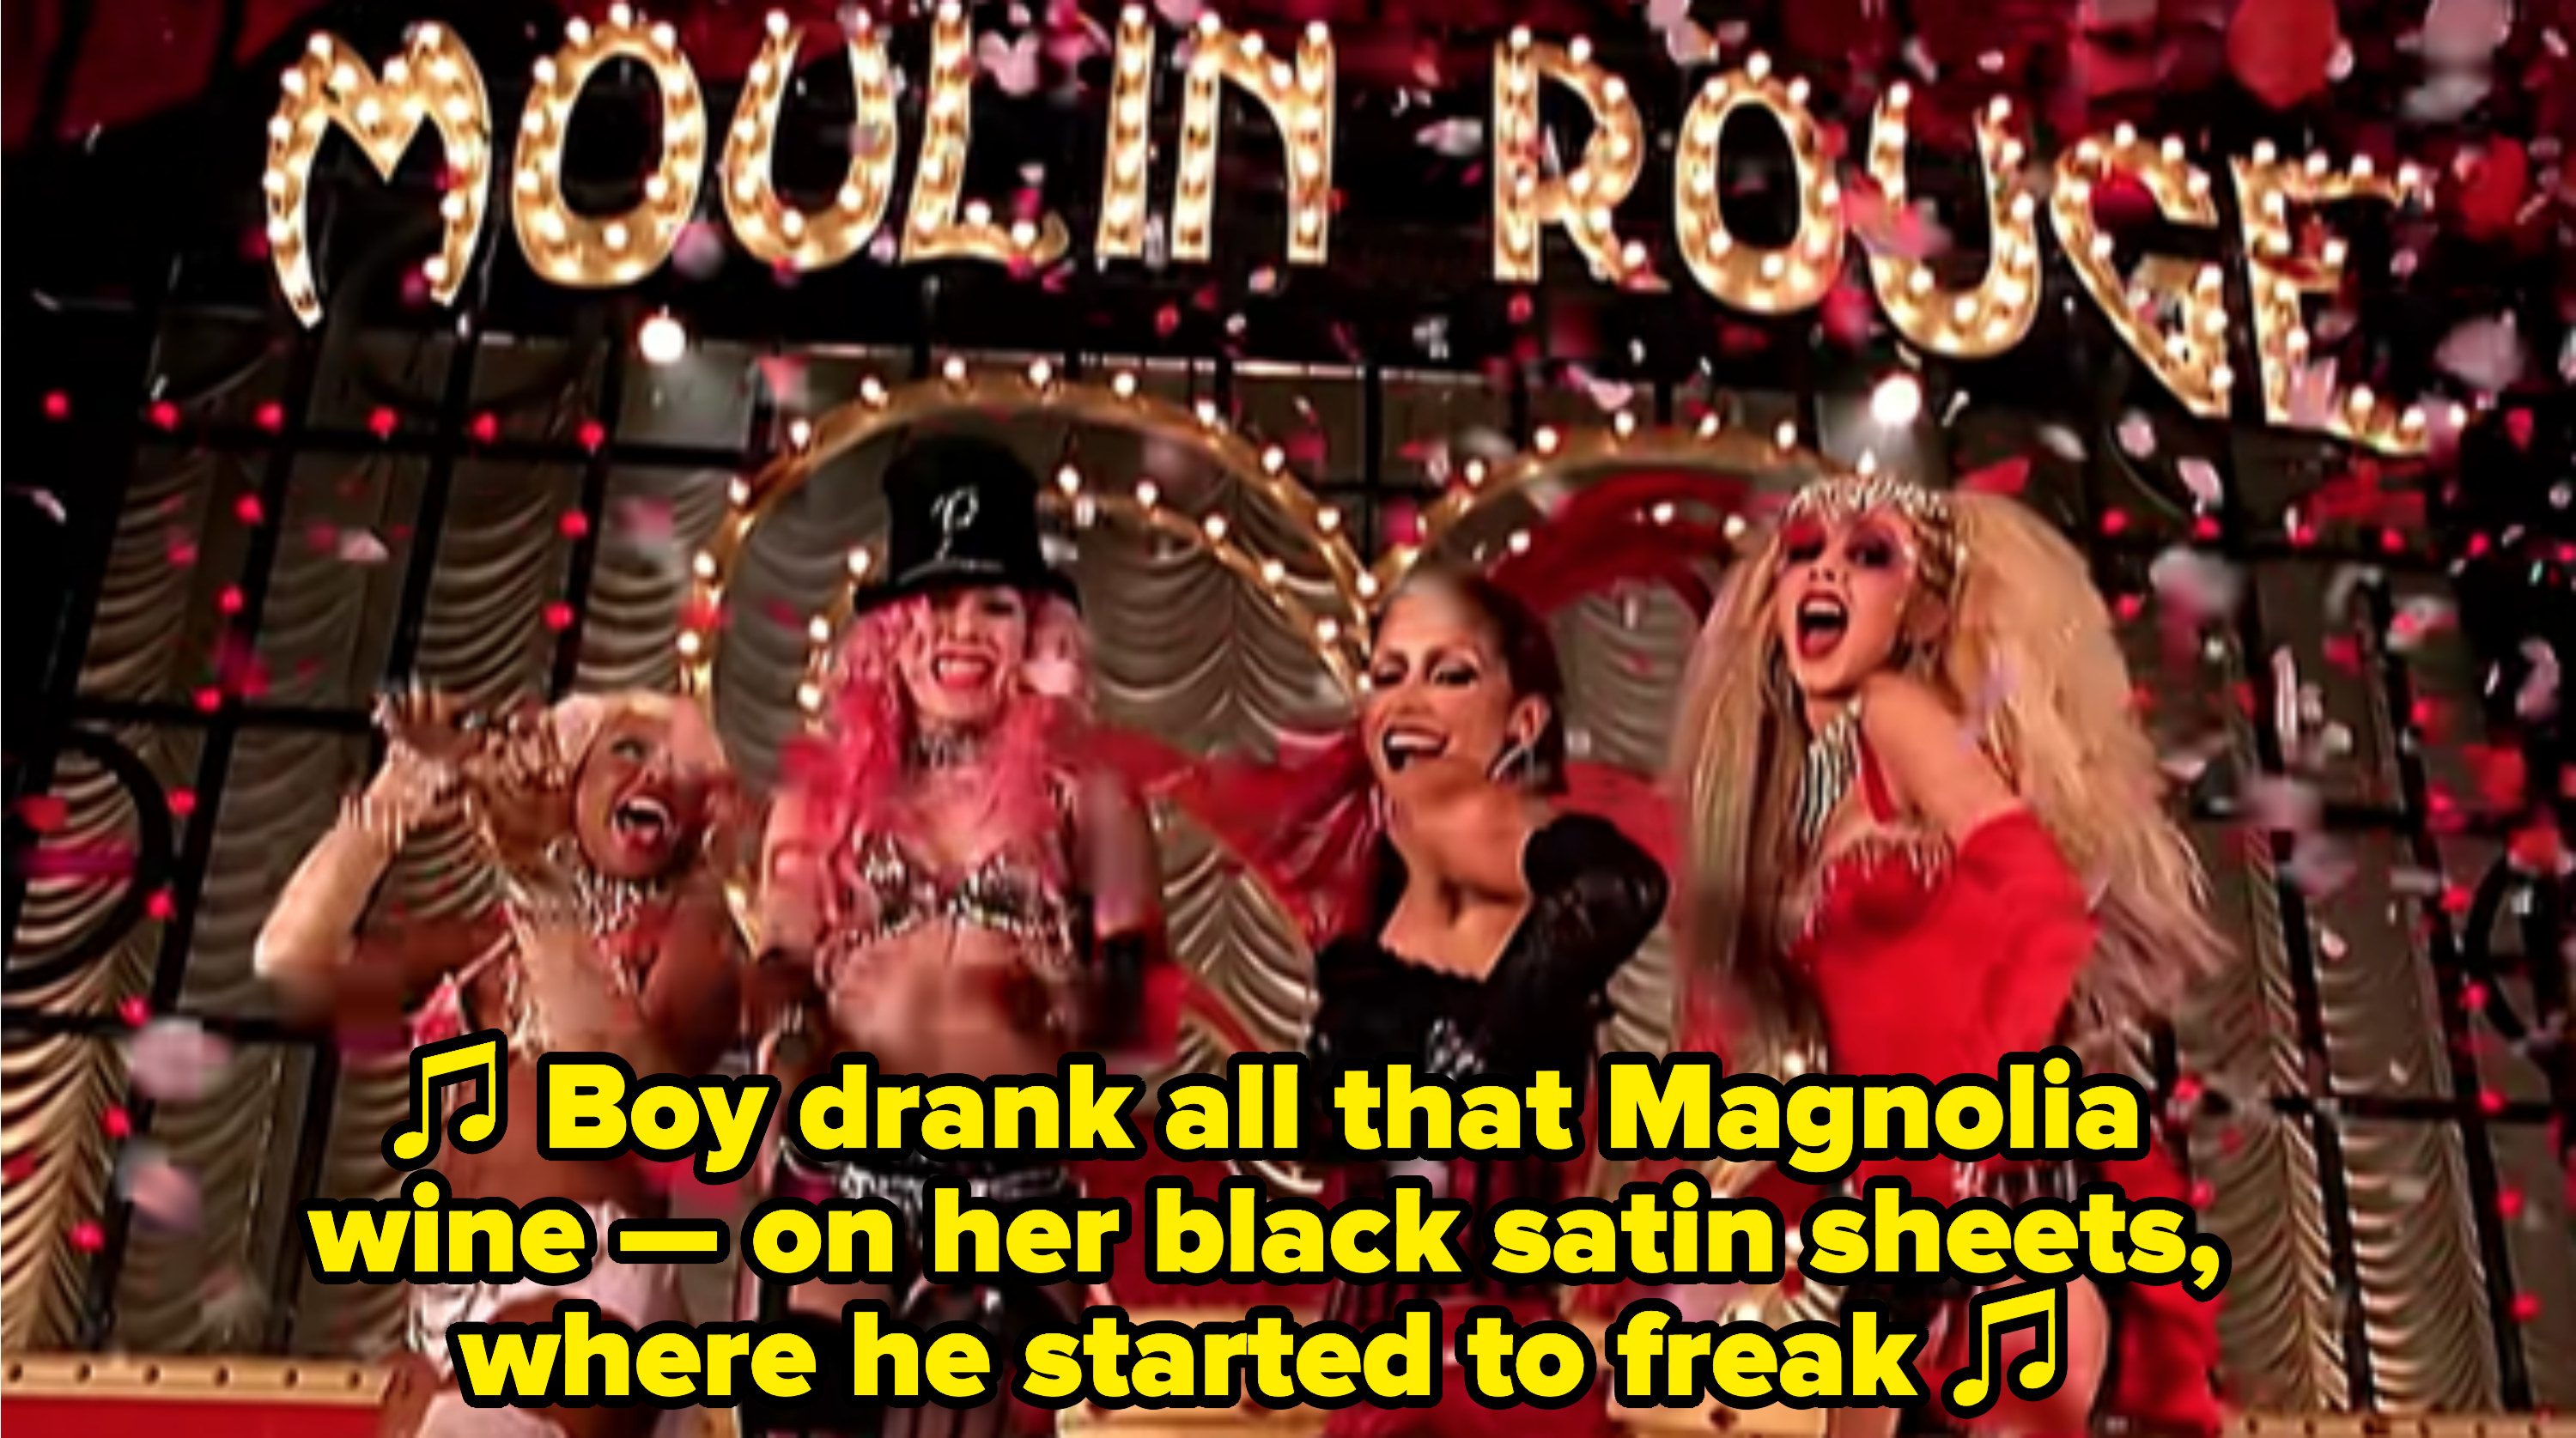 """Pink singing: """"Boy drank all that Magnolia wine — on her black satin sheets, where he started to freak"""""""